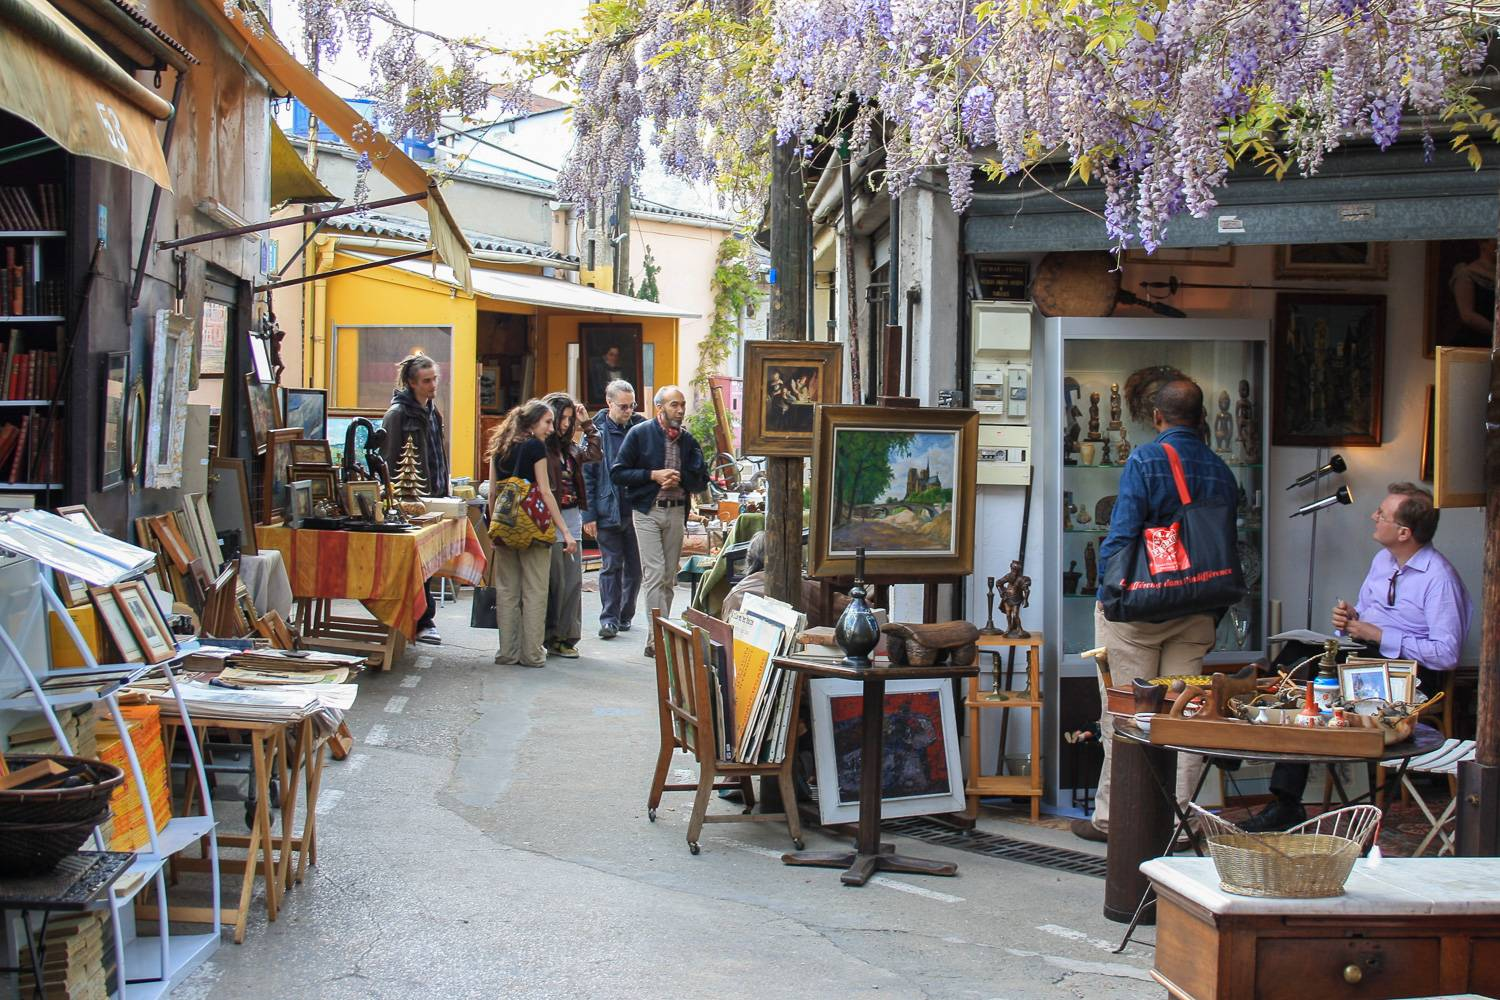 Image of people walking between antiques stalls in the Puces de Saint-Ouen outdoor flea market.